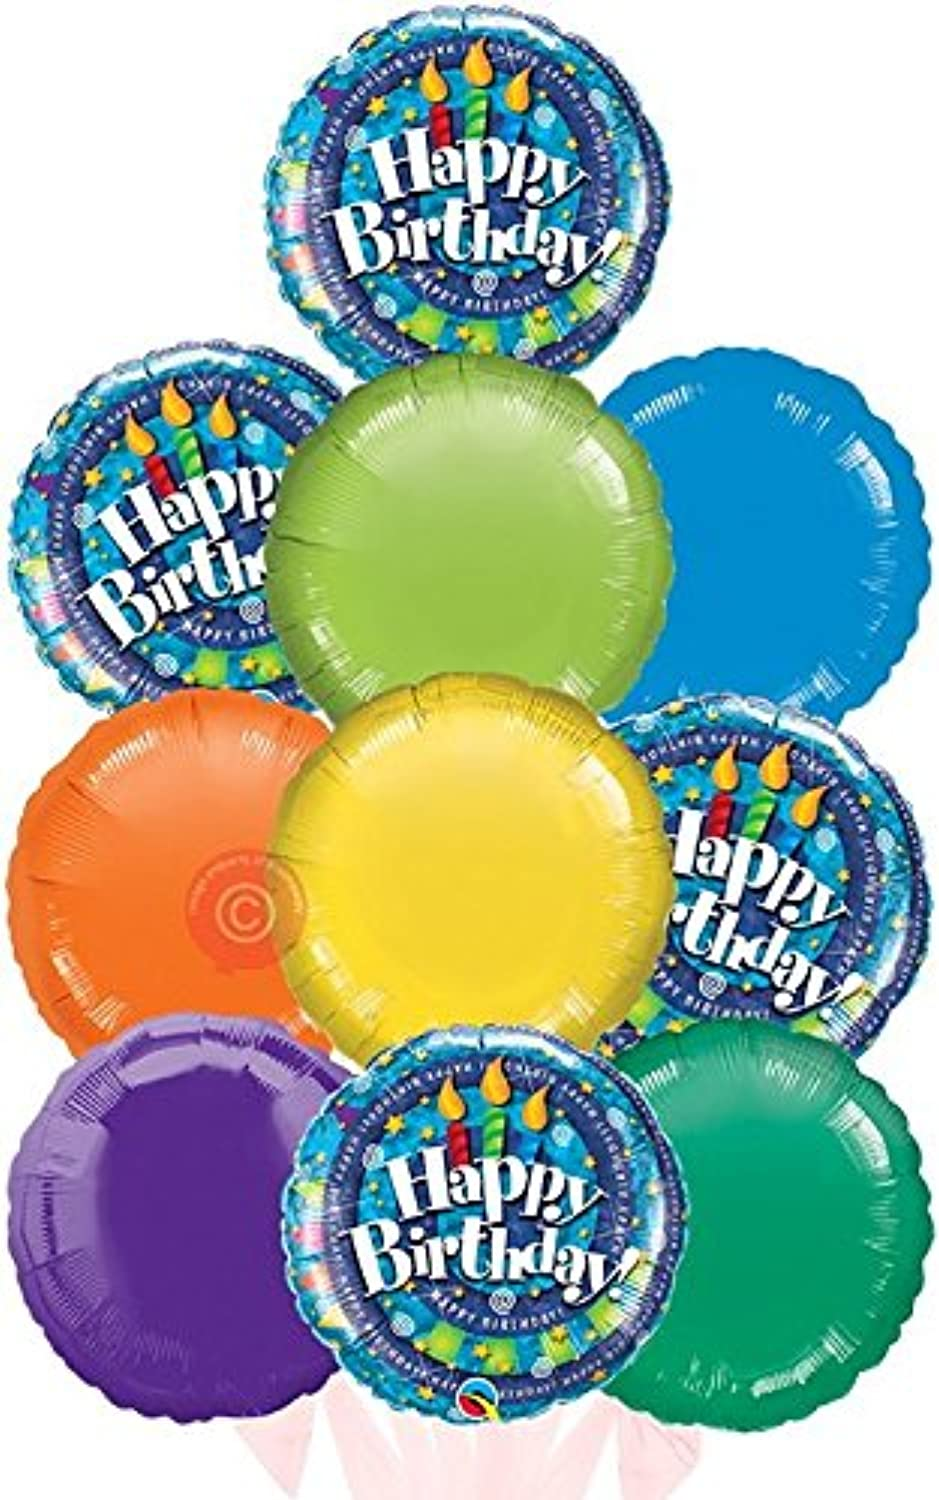 Happy Birthday Spiral and Candles  Inflated Birthday Helium Balloon Delivered in a Box  Biggest Bouquet  10 Balloons  Bloonaway